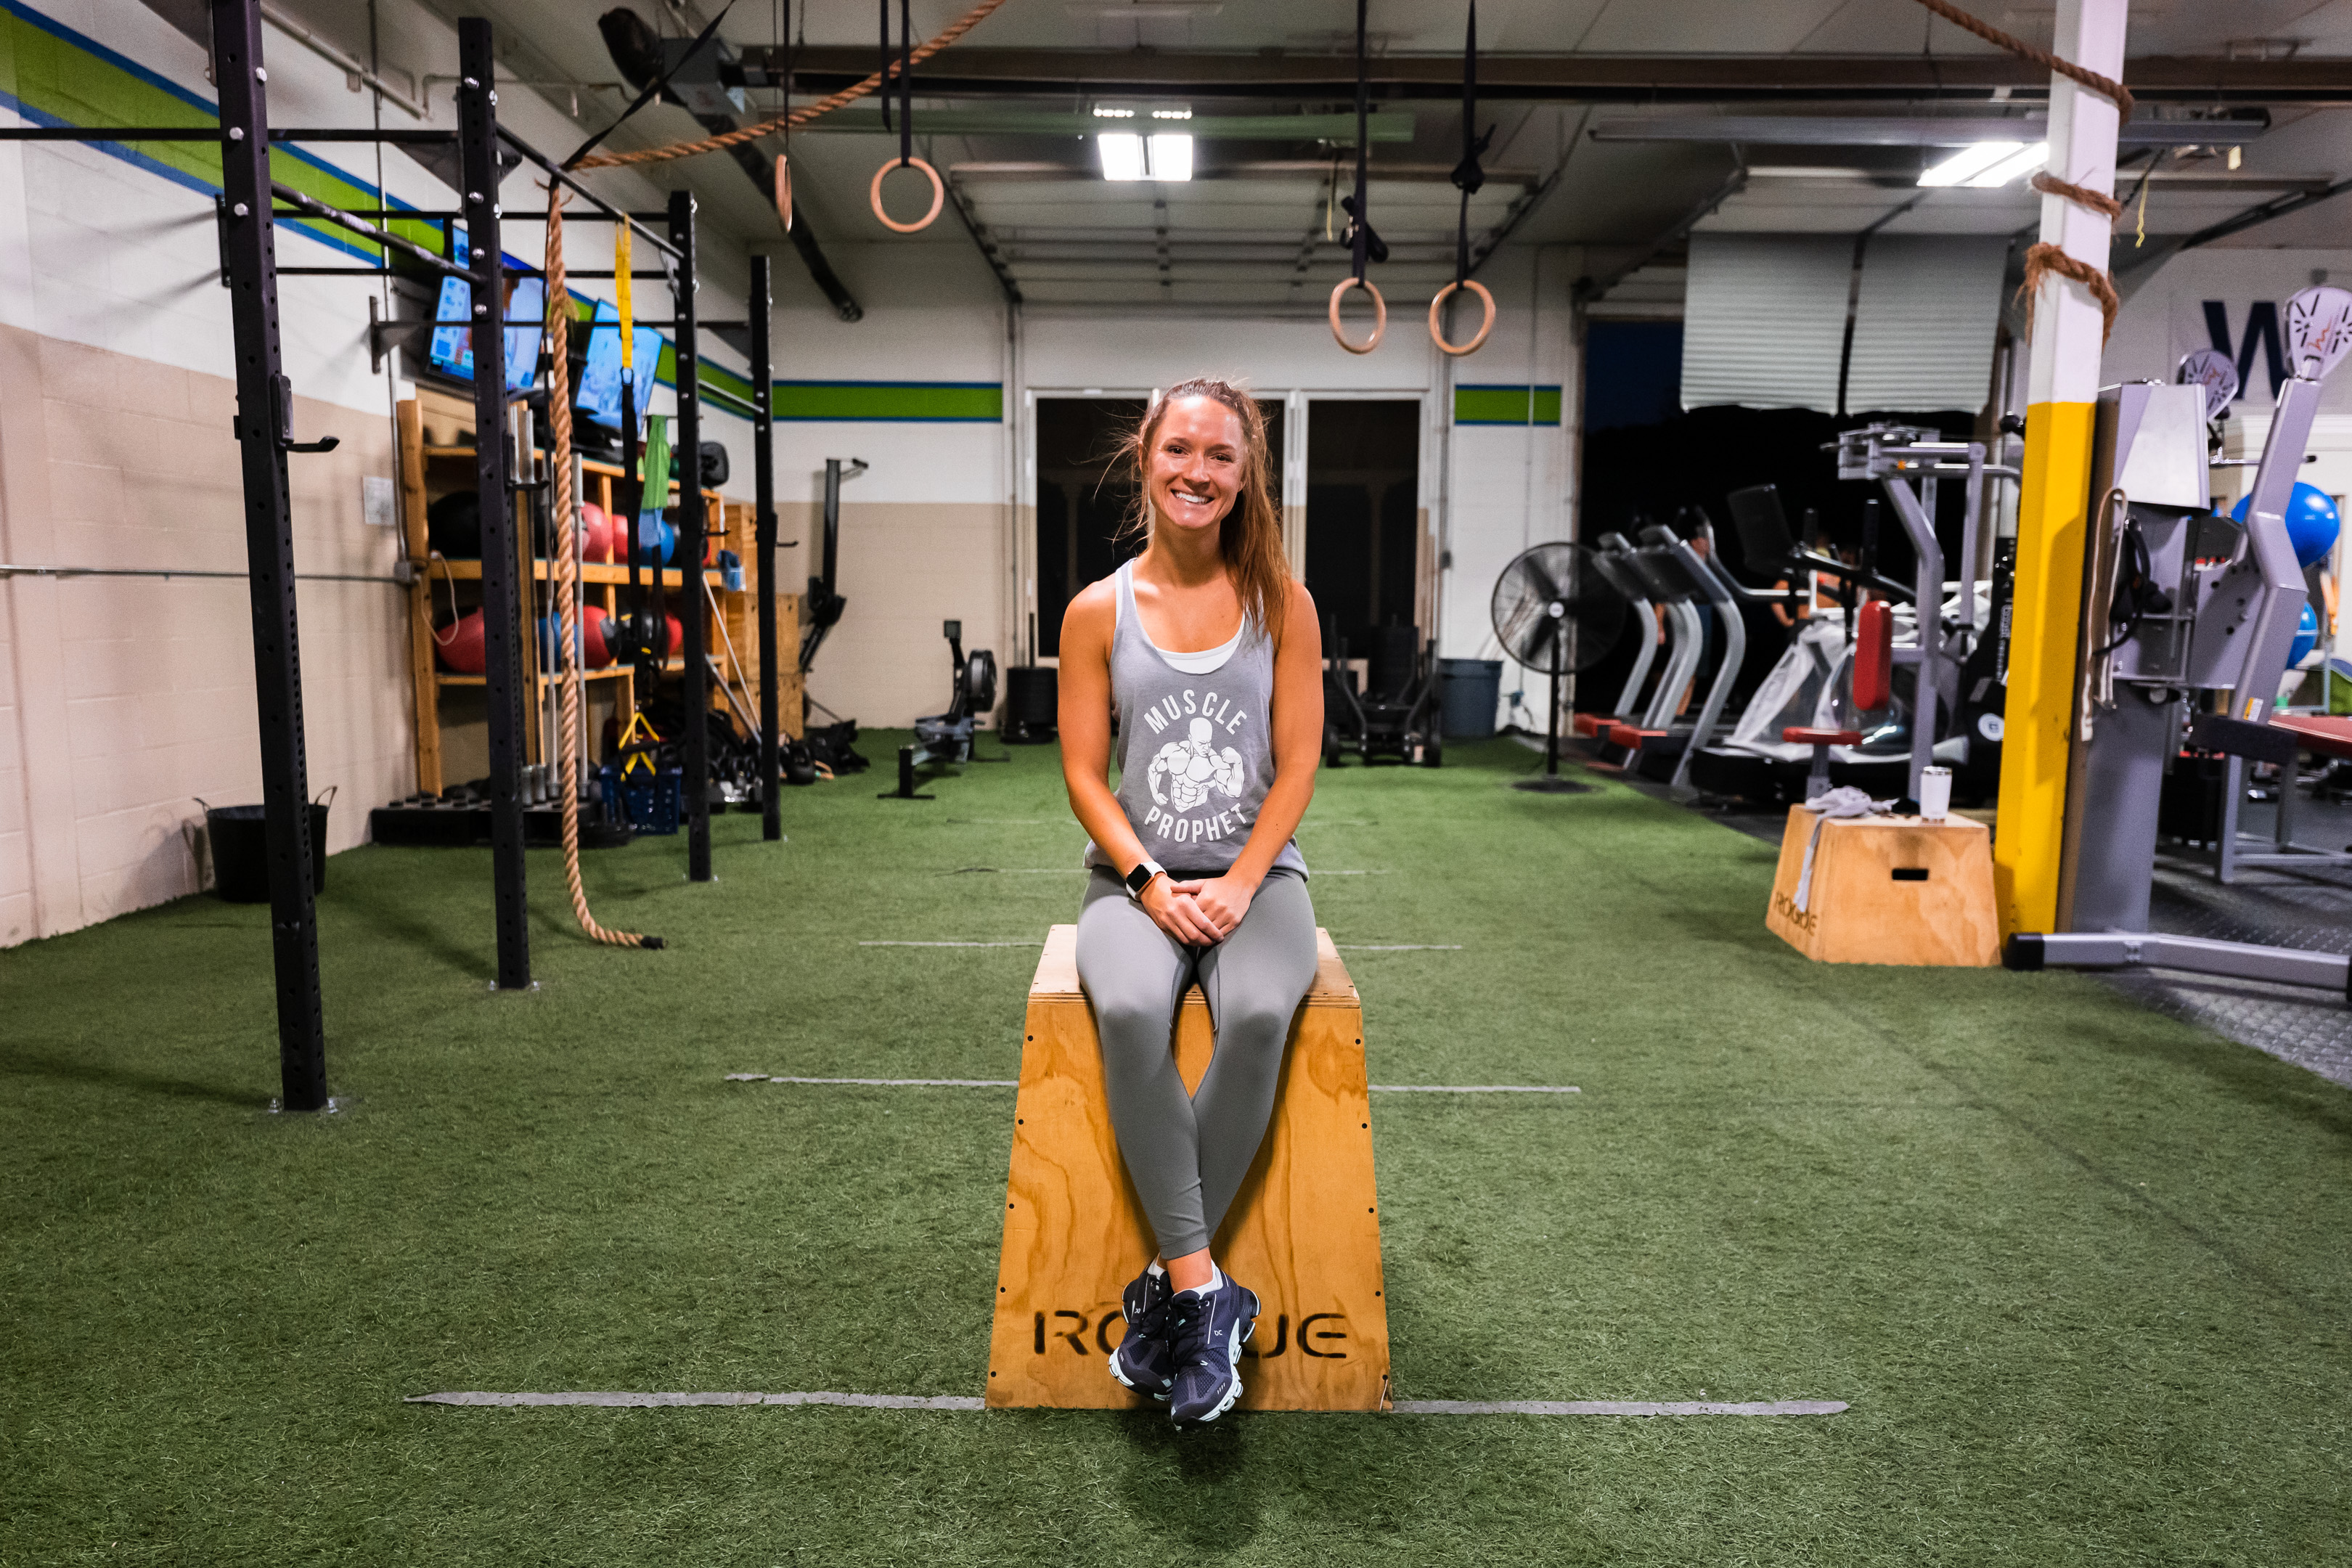 Chelsea Clark is a personal trainer at Prevail Grand Rapids located in Ada, Michigan.